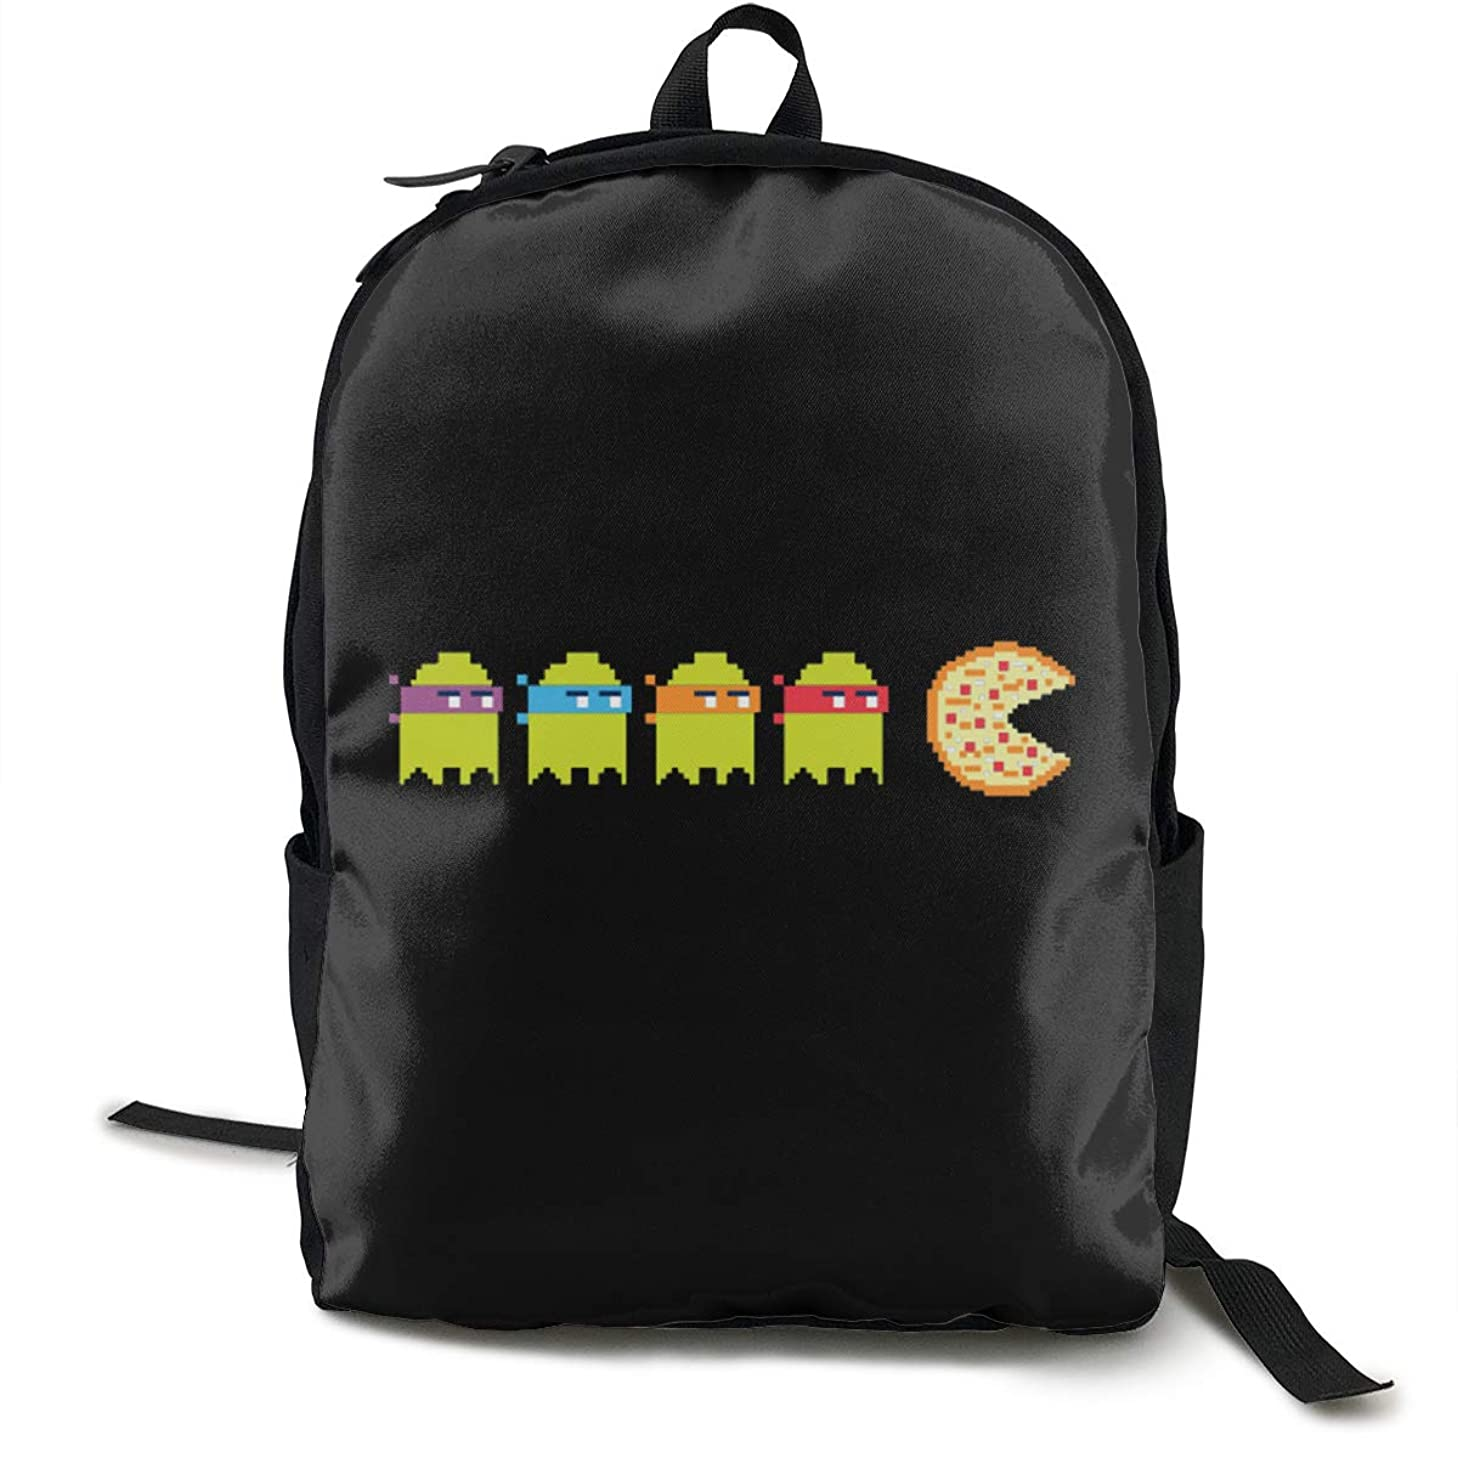 Pac Cute Ninja Turtle Eat Pizza 2019 New Style Casual Shoulders Multipurpose Backpack School Backpack Travel Rucksack Bag Laptop Daypack For Youth Men And Women